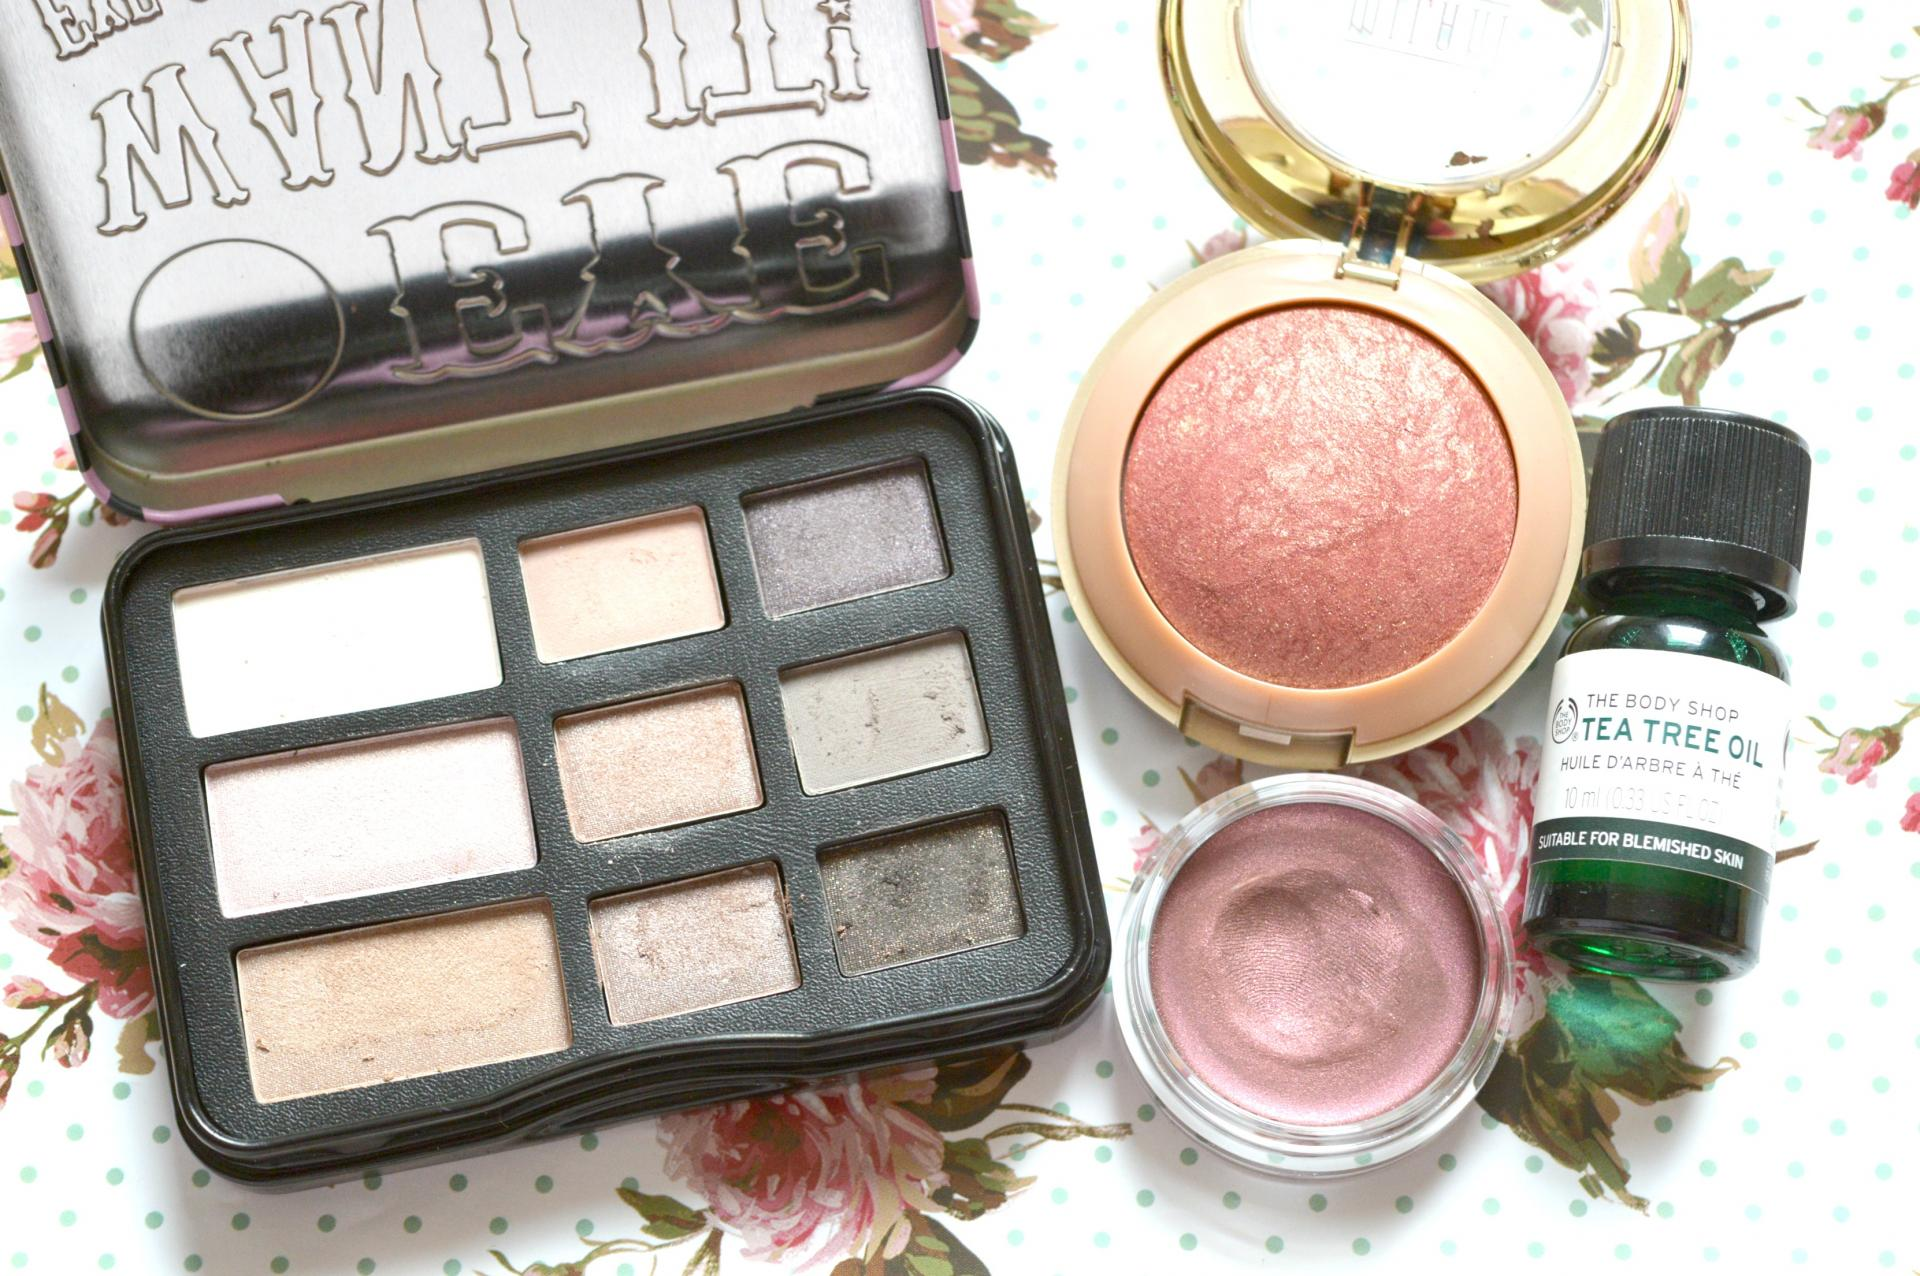 October 2016 Favourites | W7 Eye Want It Eyeshadow Collection, Bourjois 24H Color Edition Cream to Powder Eyeshadow in Prune Nocturne, The Body Shop Tea Tree Oil and Milani Baked Blush in Red Vino